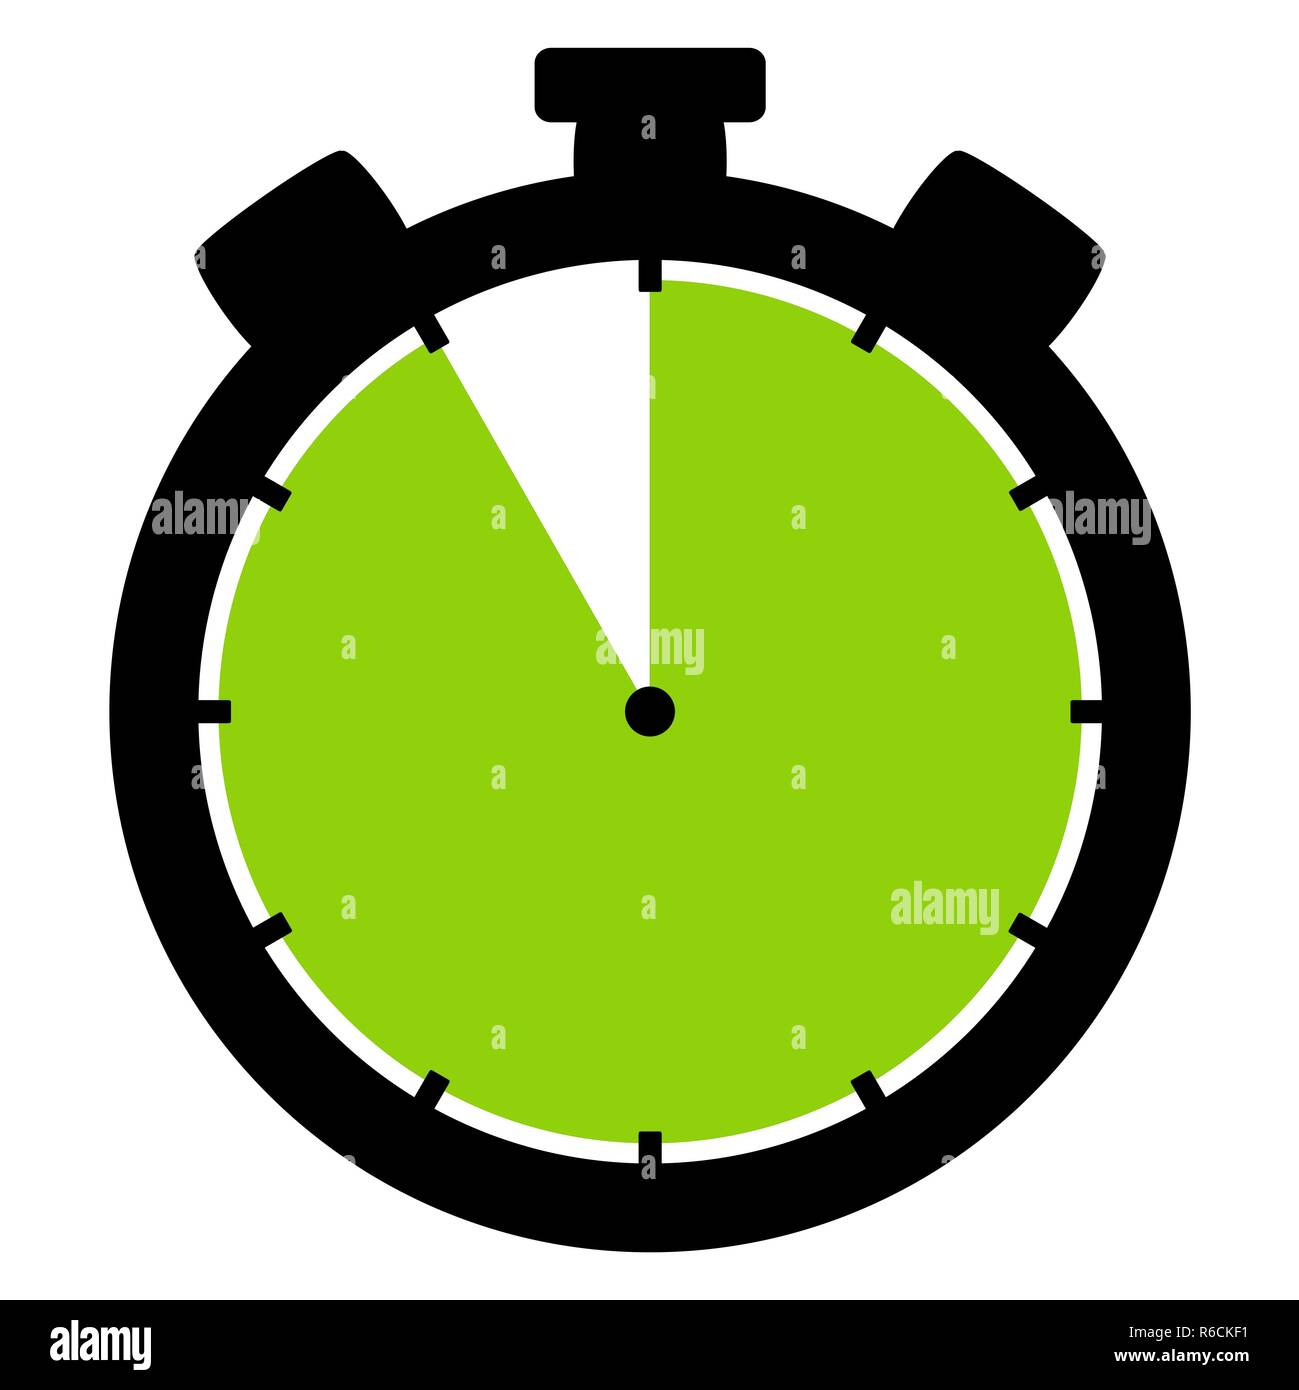 stopwatch icon: 55 minutes 55 seconds or 11 hours - Stock Image